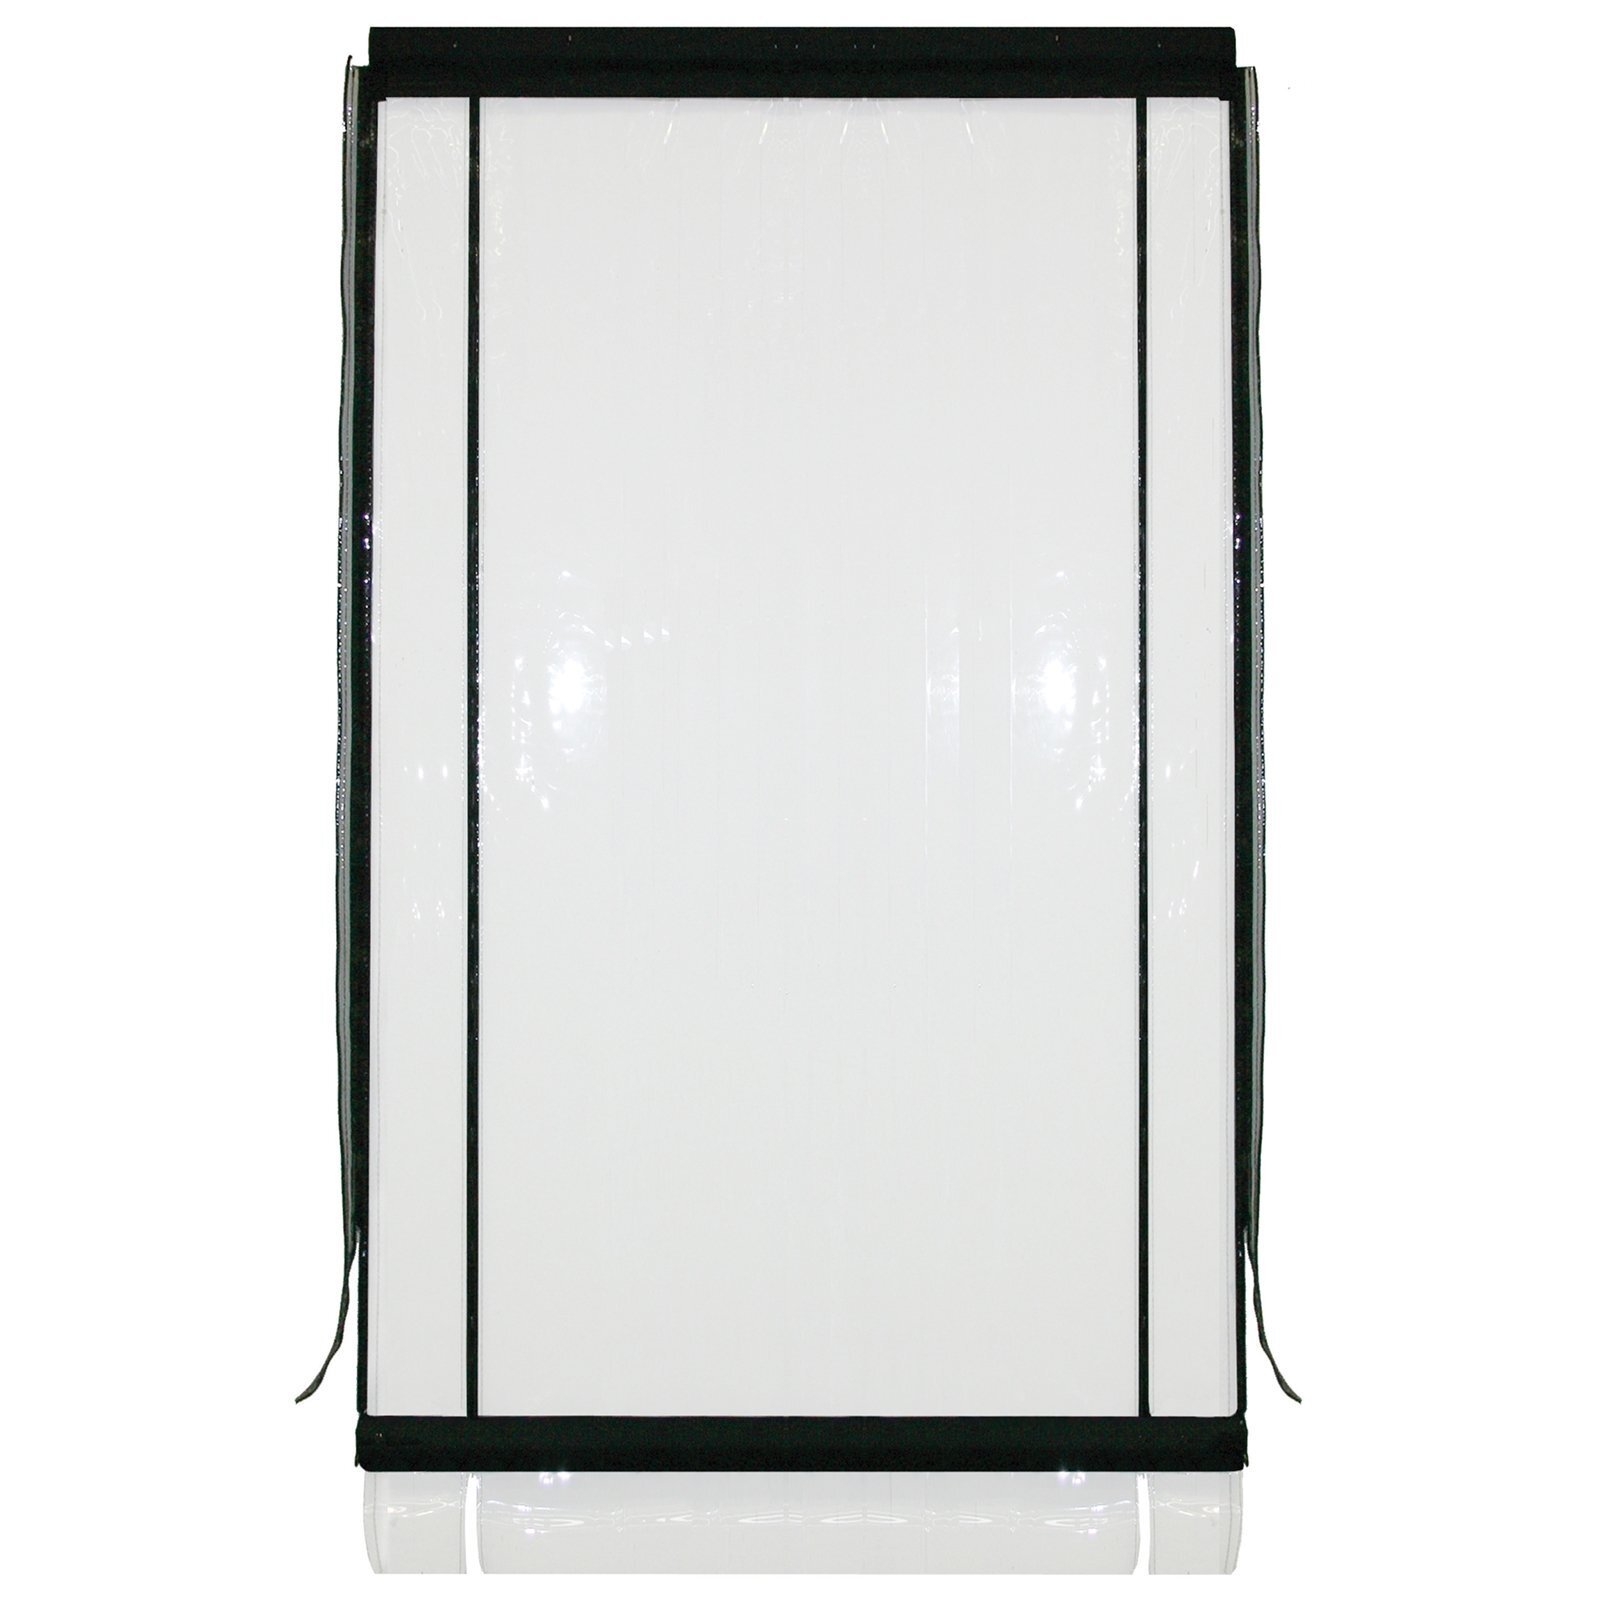 Bistro Blinds 0.75mm PVC Outdoor Blind - Clear / Black 1500mm x 2400mm